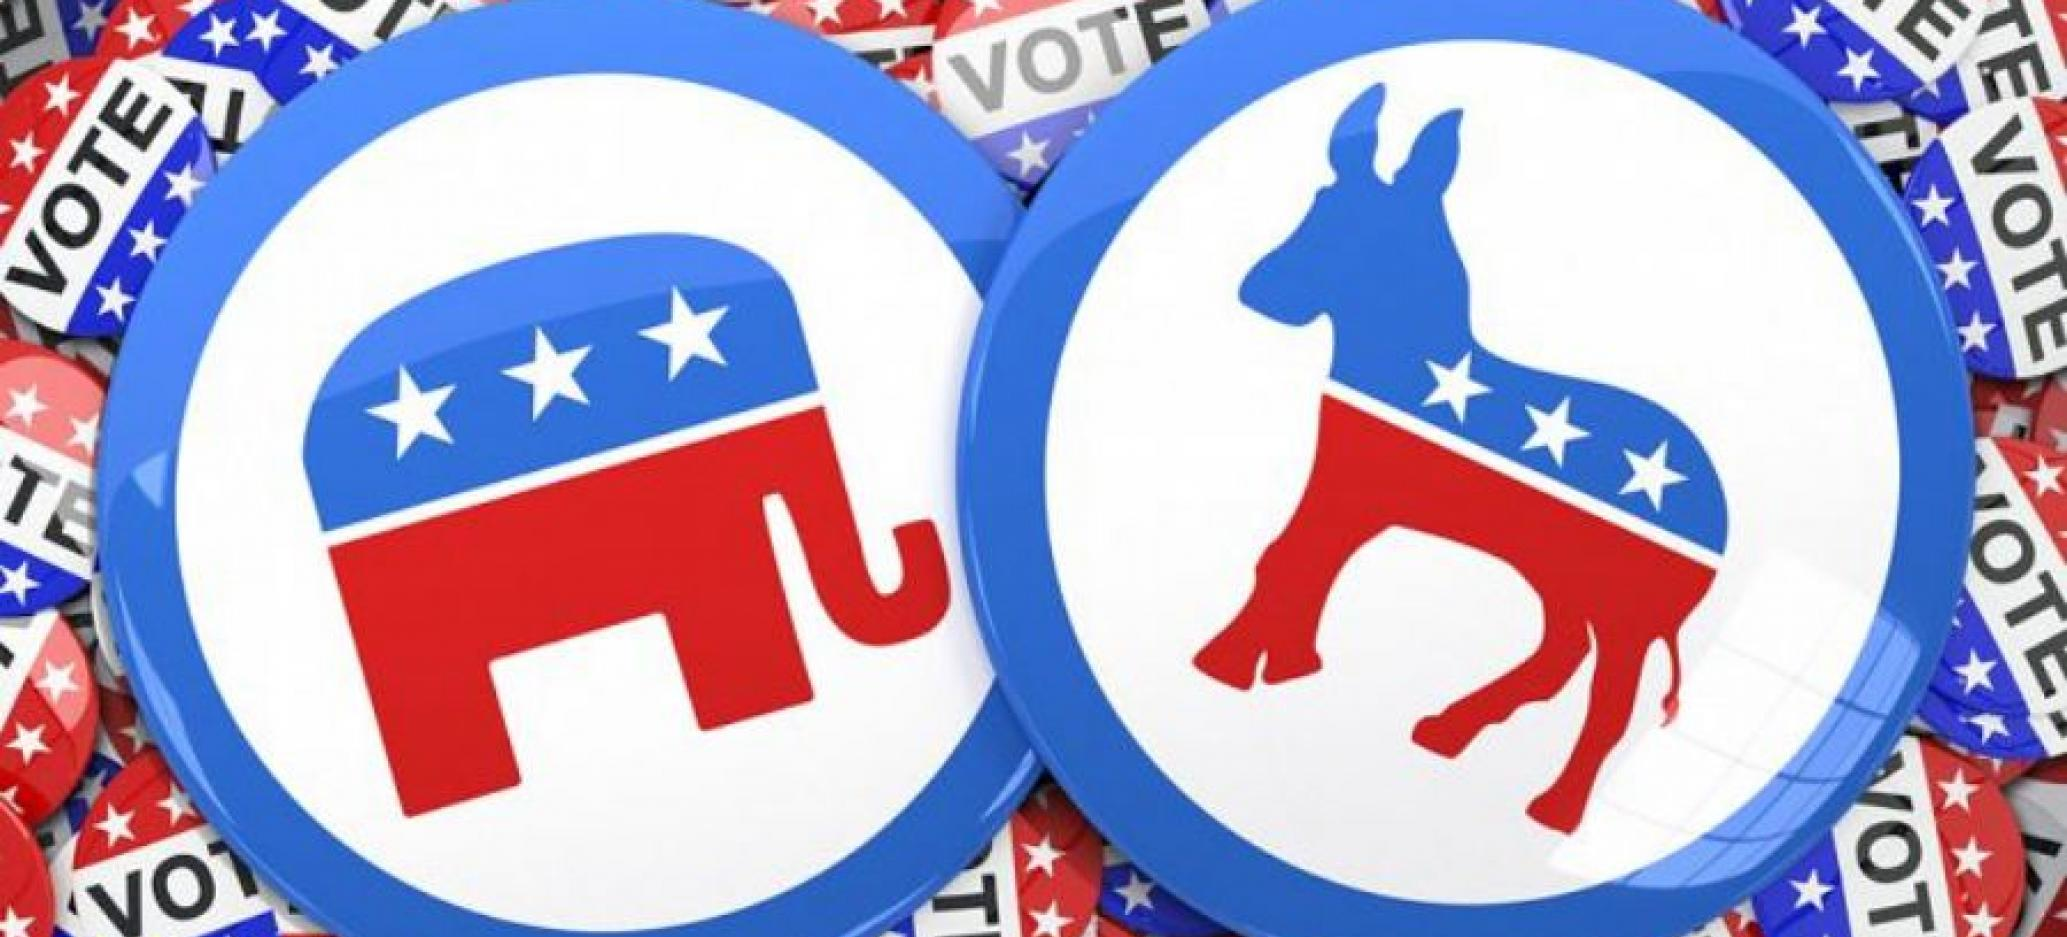 The 5 Key Differences Between Democrats and Republicans